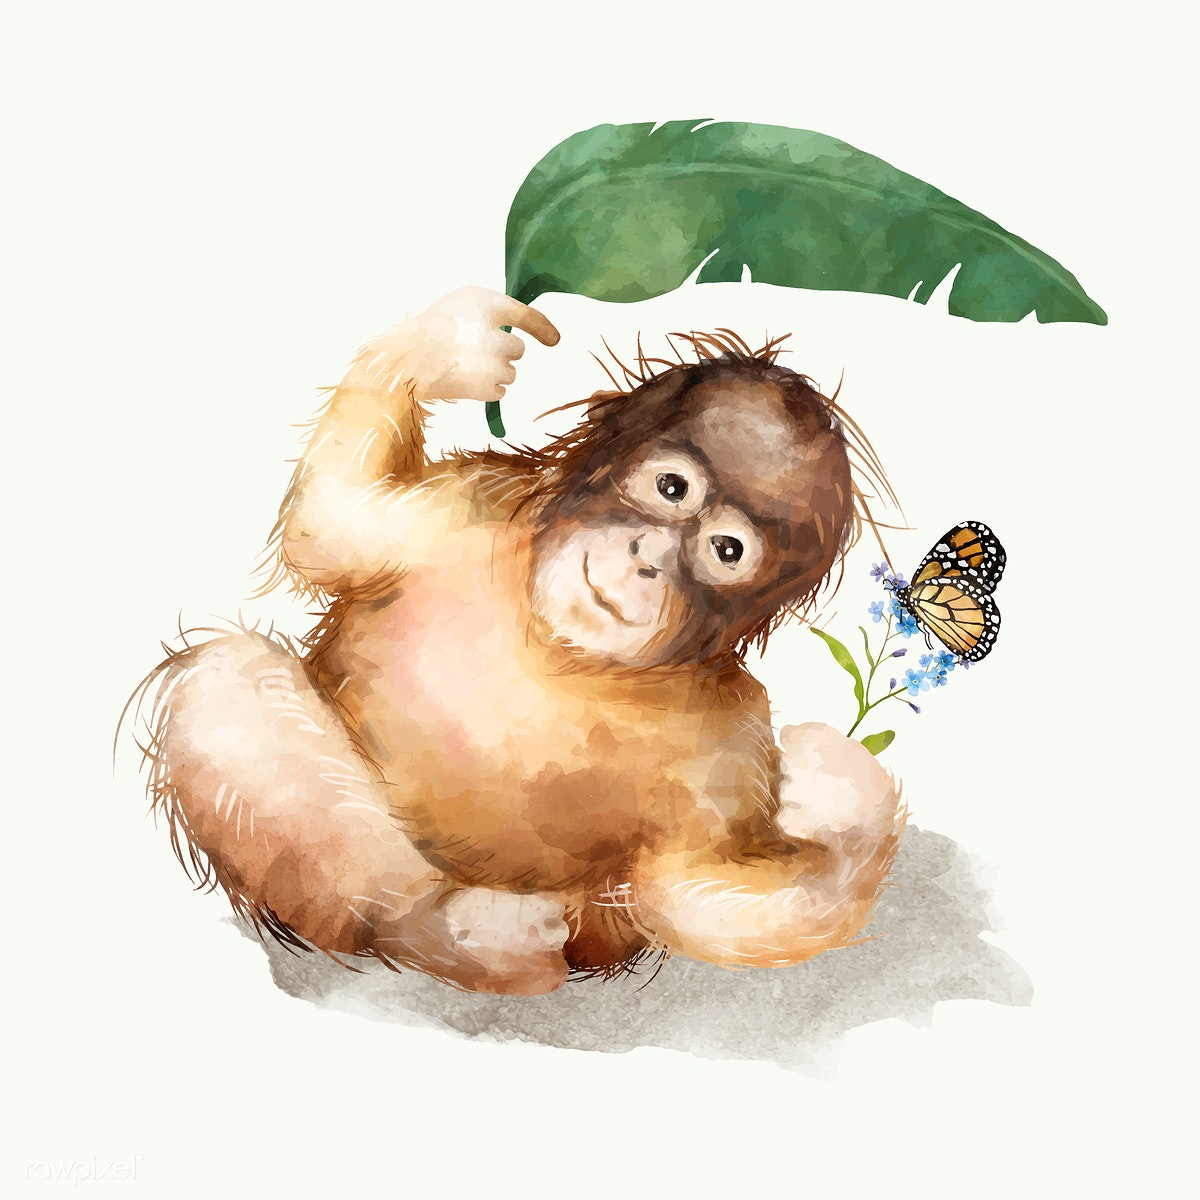 Download premium vector of Illustration of a baby chimpanzee 325131